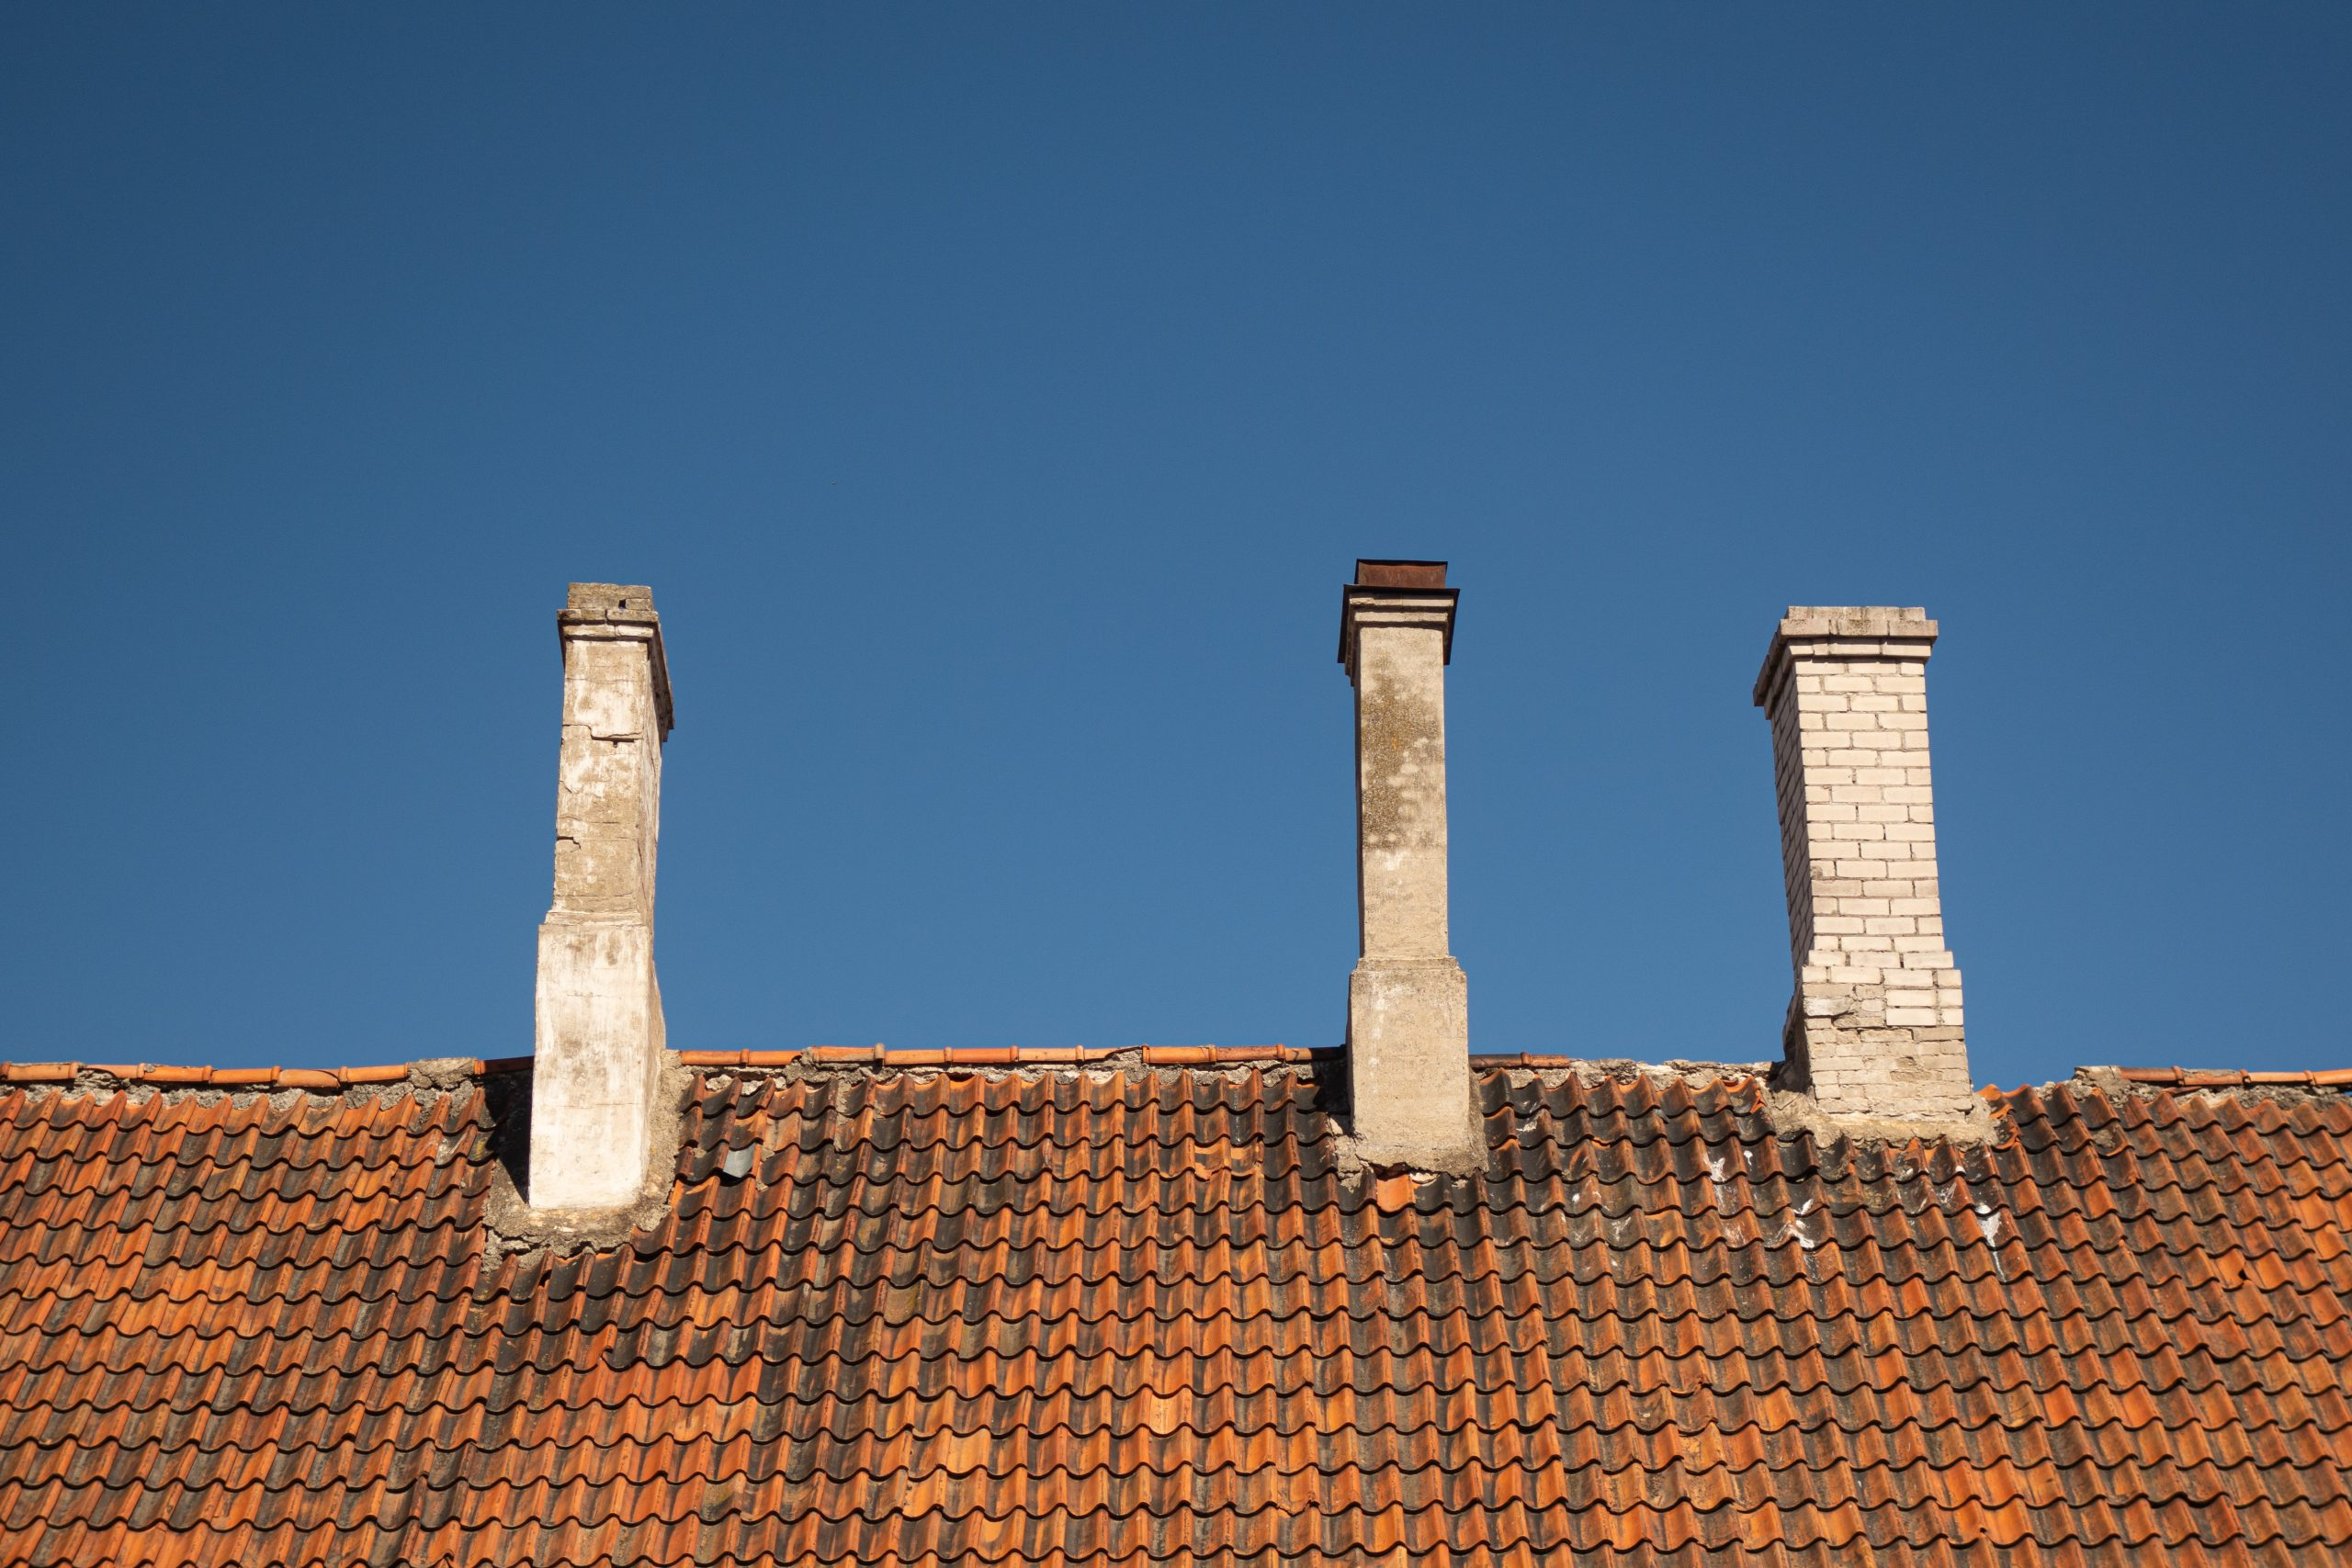 What Does A Roofing System Contain, And Why Do You Need Innovation In Them?